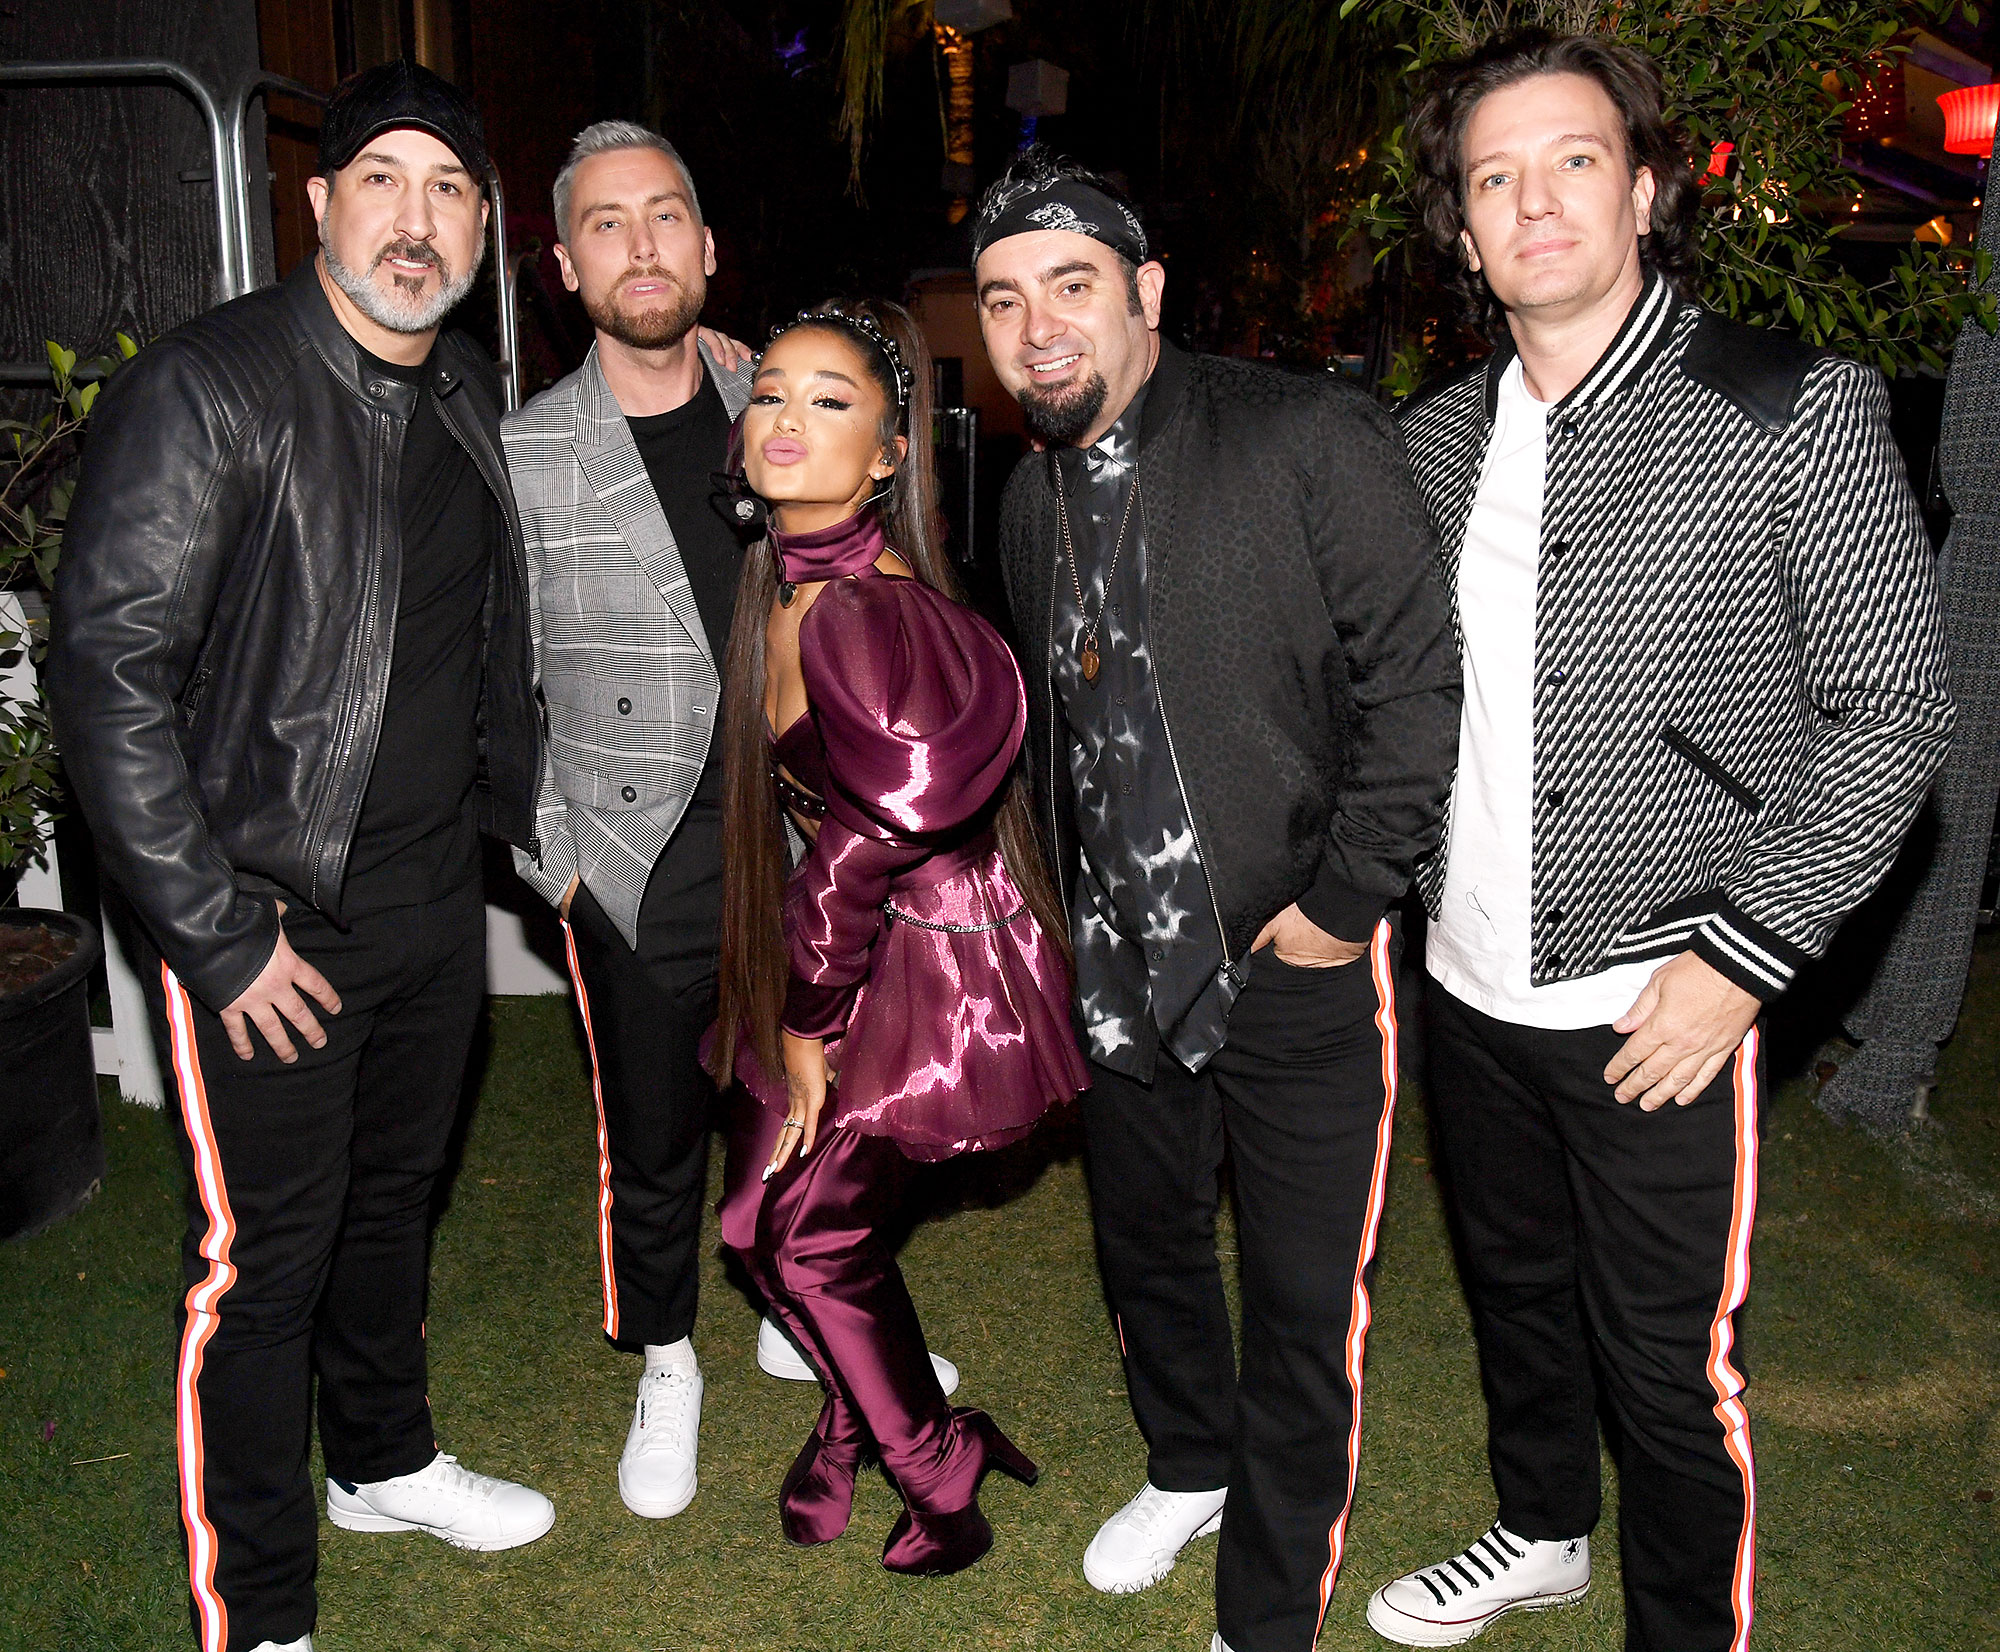 NSYNC Reunite Ariana Grande Coachella 2019 Performance - Ariana Grande (c) with members of NSYNC Joey Fatone, Lance Bass, Chris Kirkpatrick, and JC Chasez at the Coachella Valley Music And Arts Festival on April 14, 2019 in Indio, California.